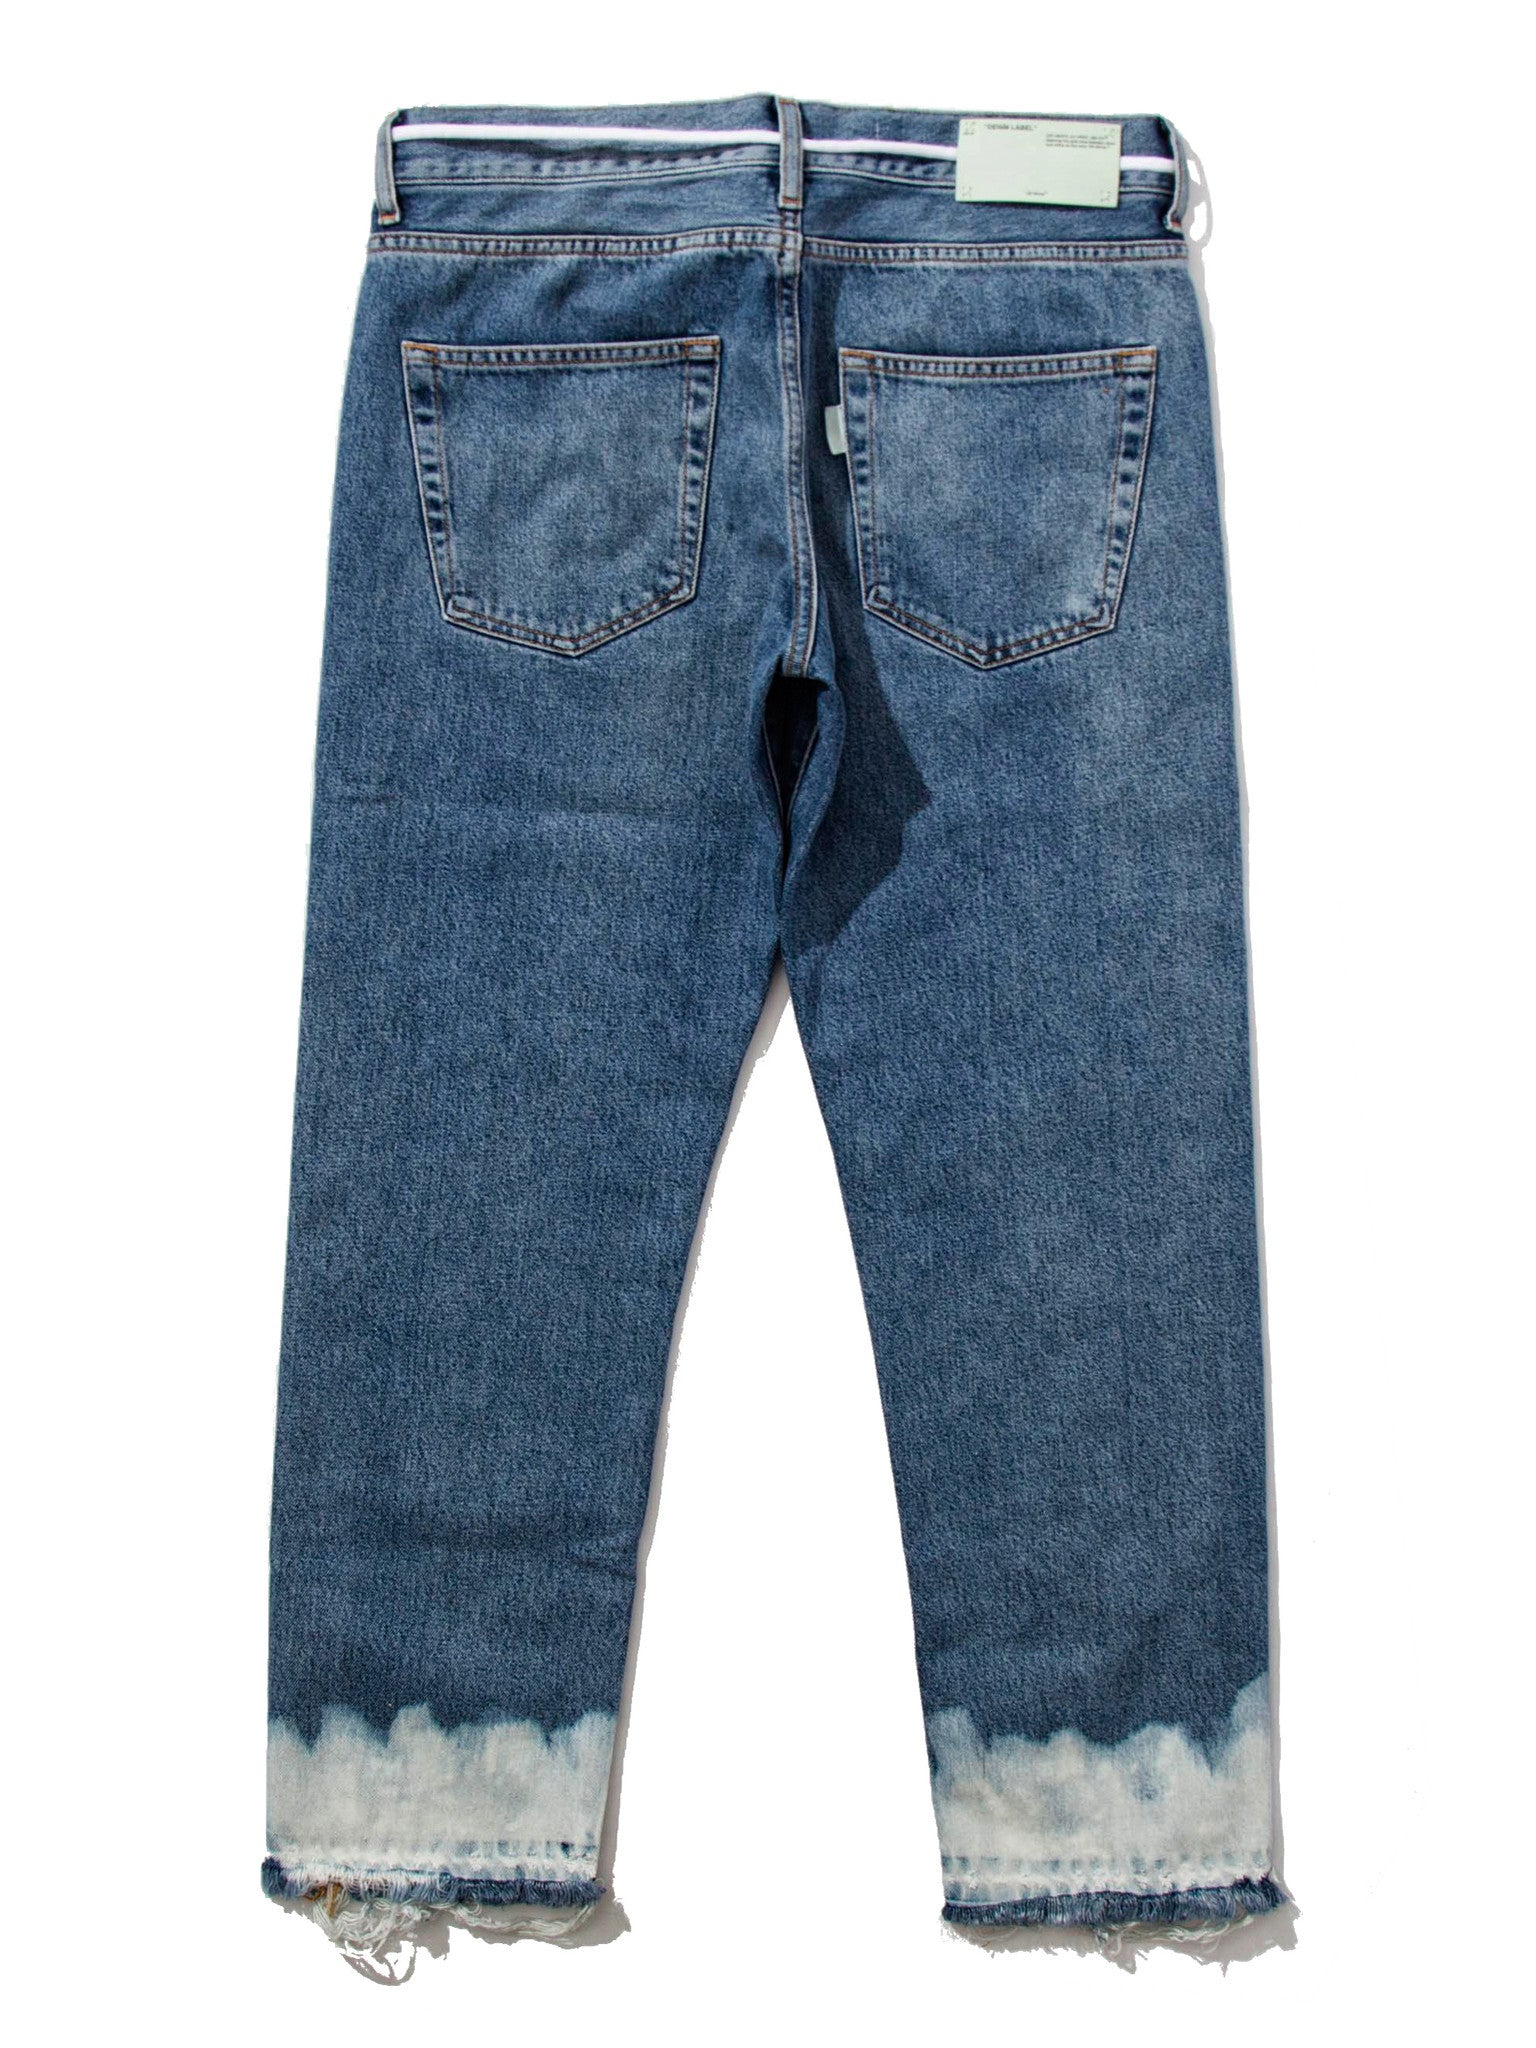 34 Crop 5 Pockets Bottom Bleach VTG Denim 4